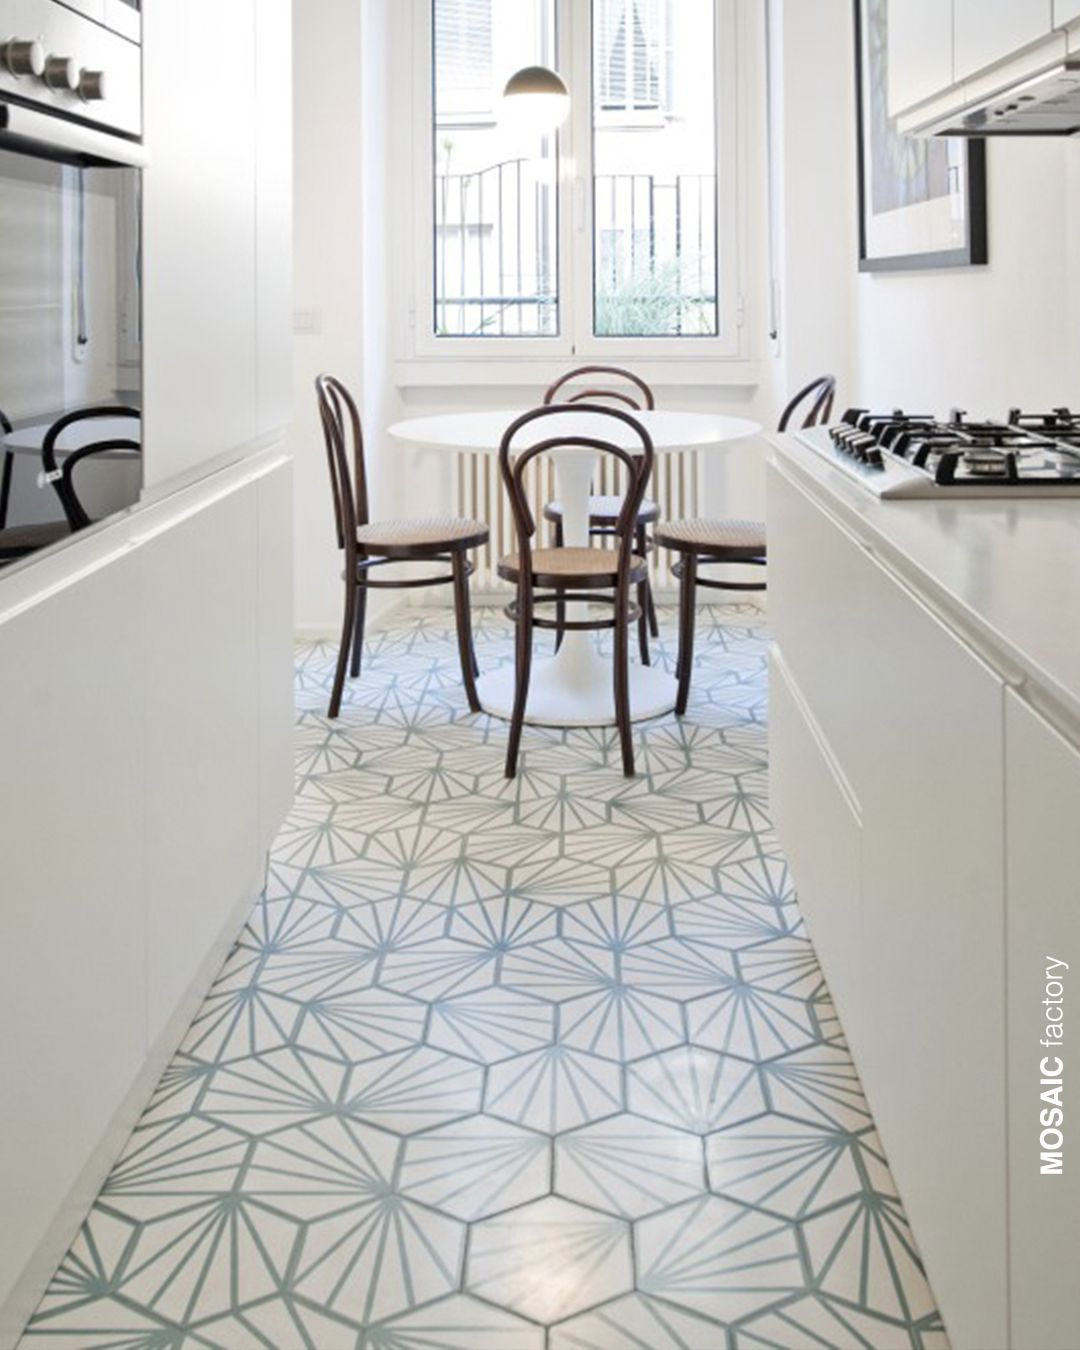 Kitchen Floor With Hexagonal Cement Tile In White And Mint Green